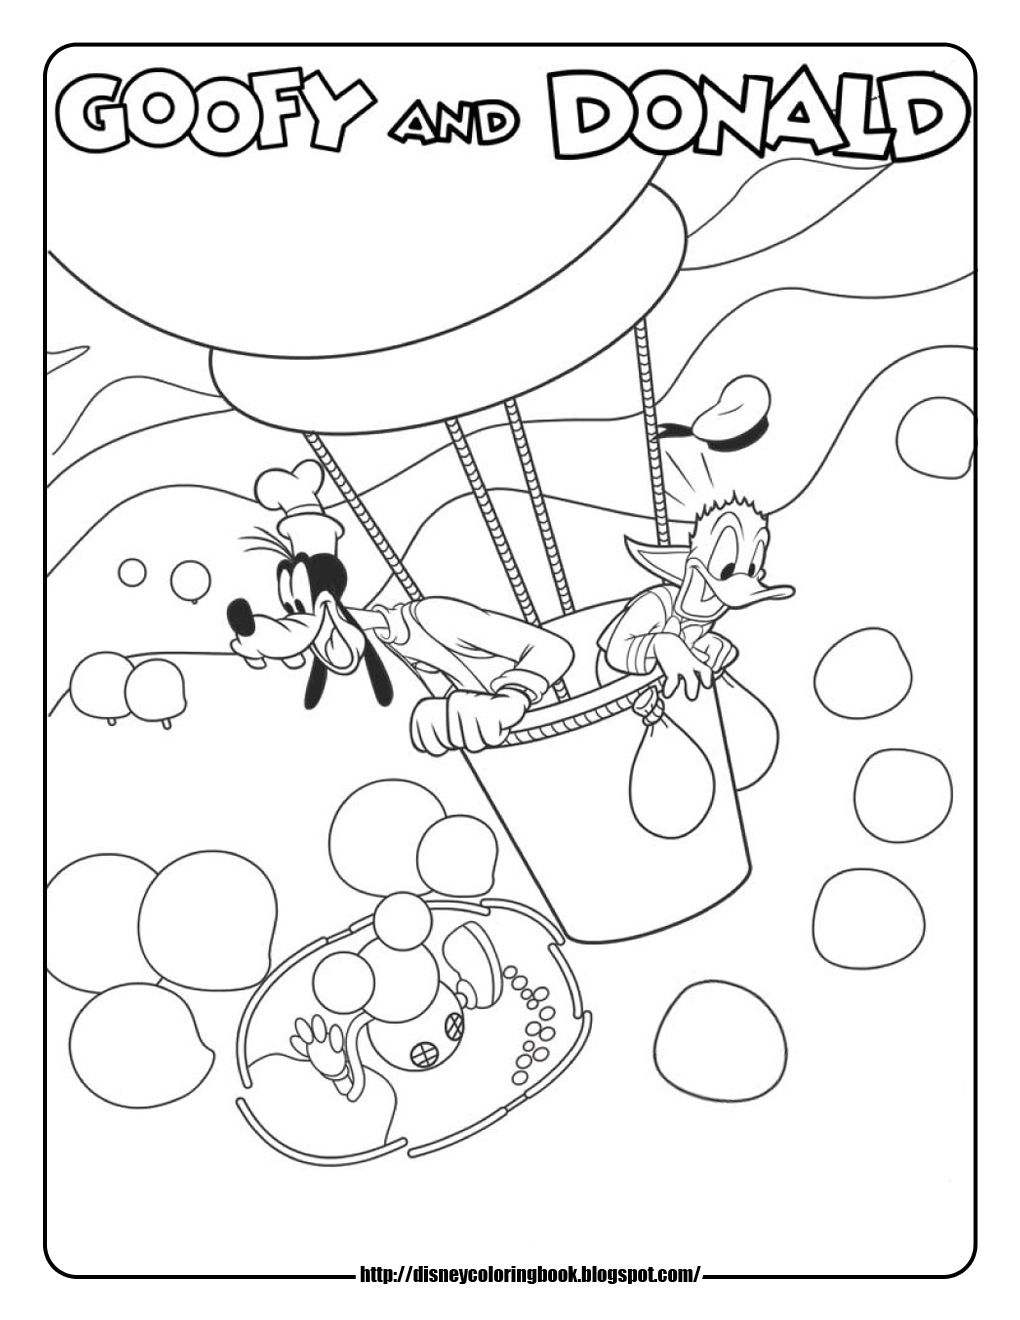 Mickey Mouse Geburtstag Ausmalbilder : Mickey Mouse Coloring Pages Goofy Donald Hot Air Balloon Abcs